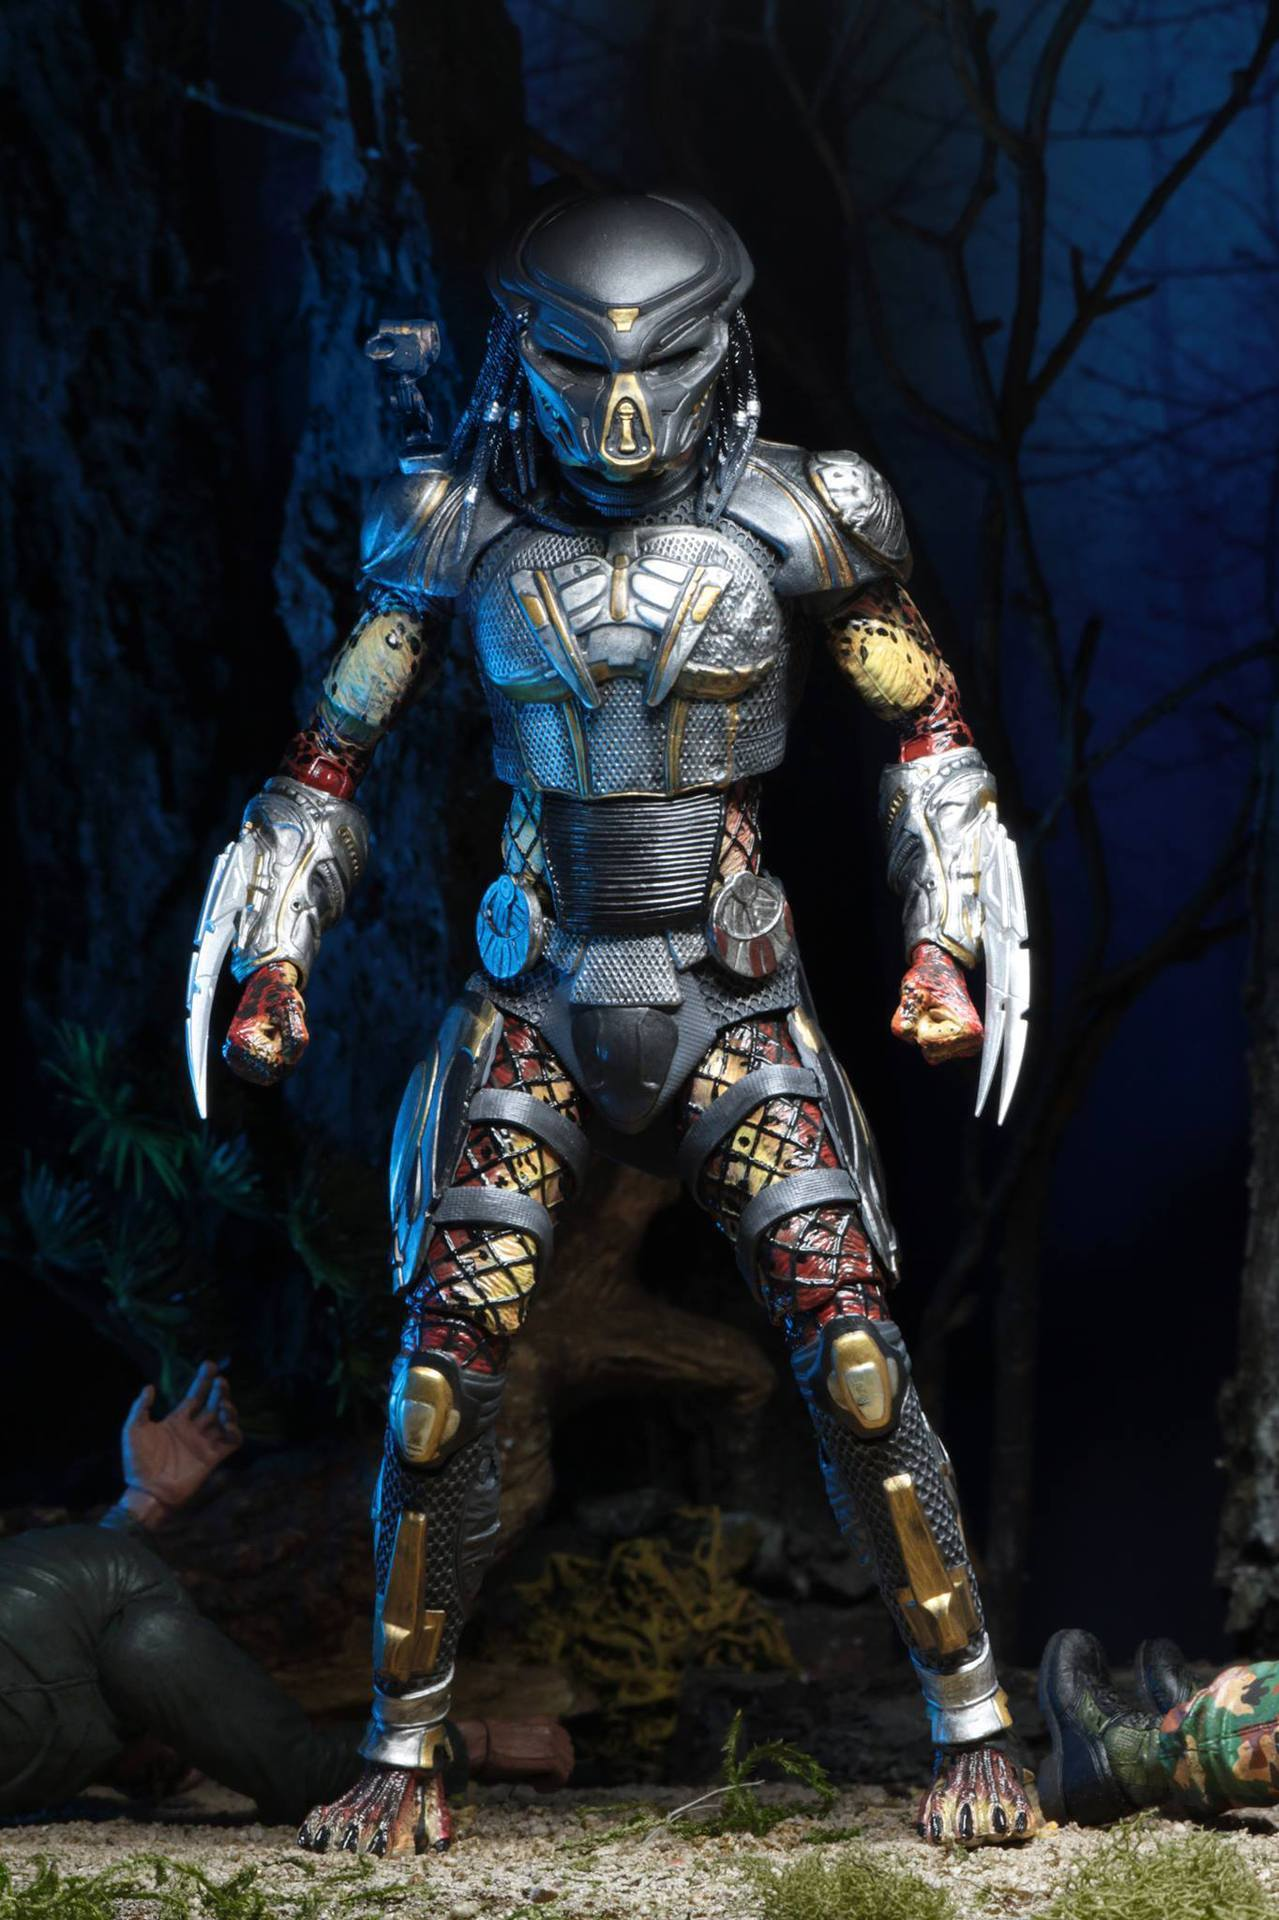 2pcs Head 2018 New NECA Aliens vs Predator Ultimate Fugitive Predator Unmasked Scarface Action Figure Toy Doll (5)